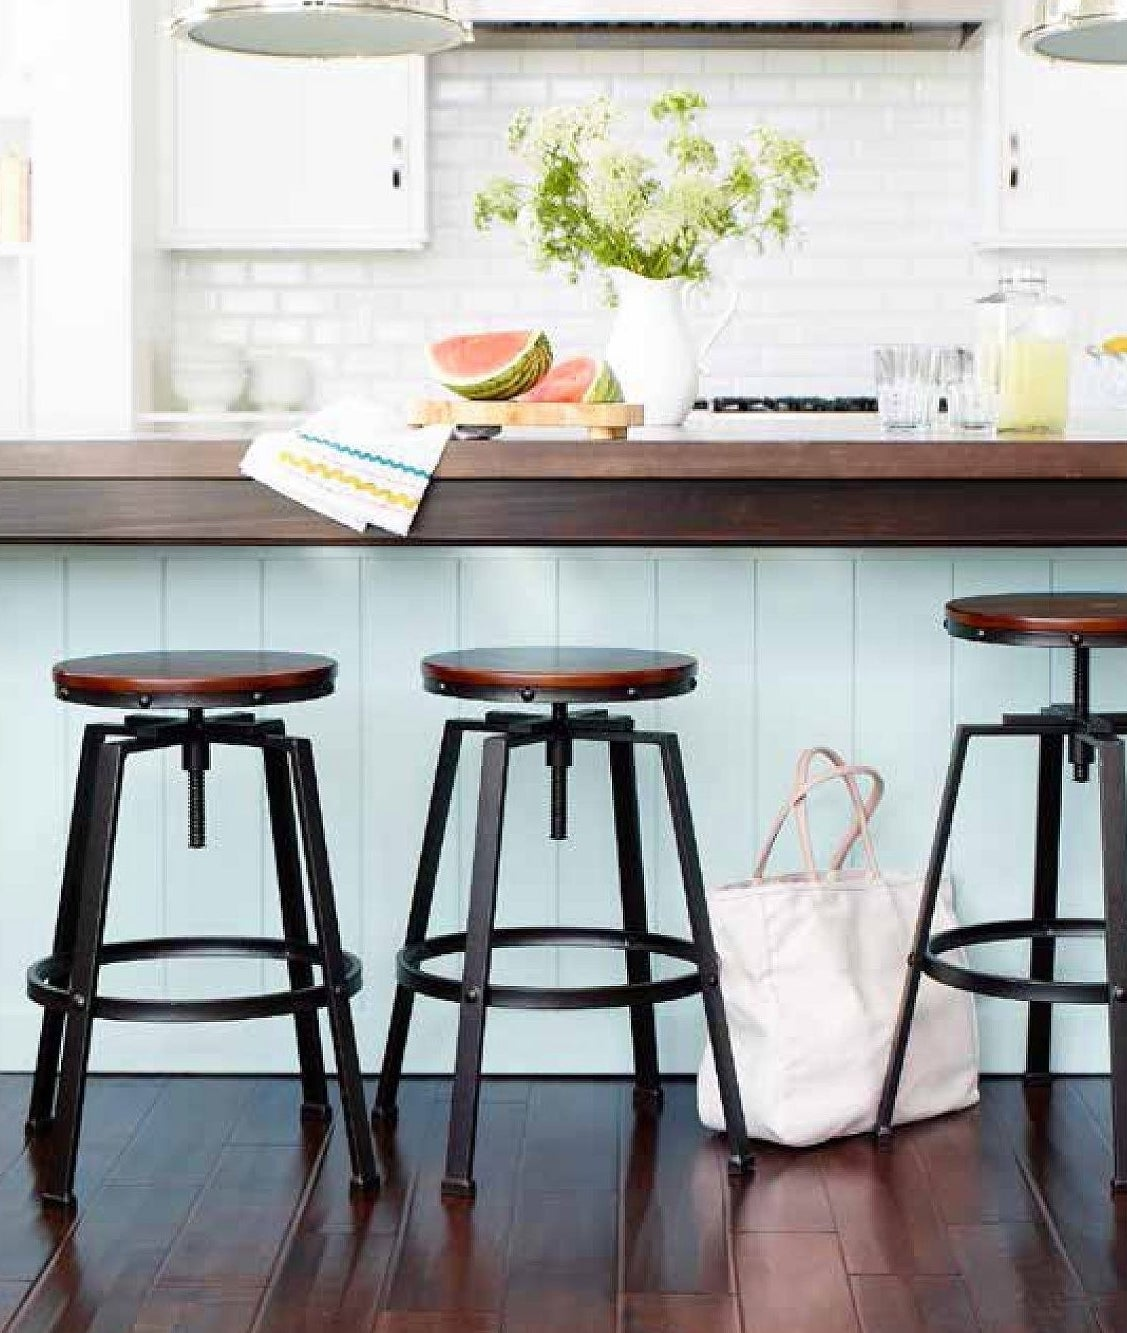 stools with brown seat and black legs